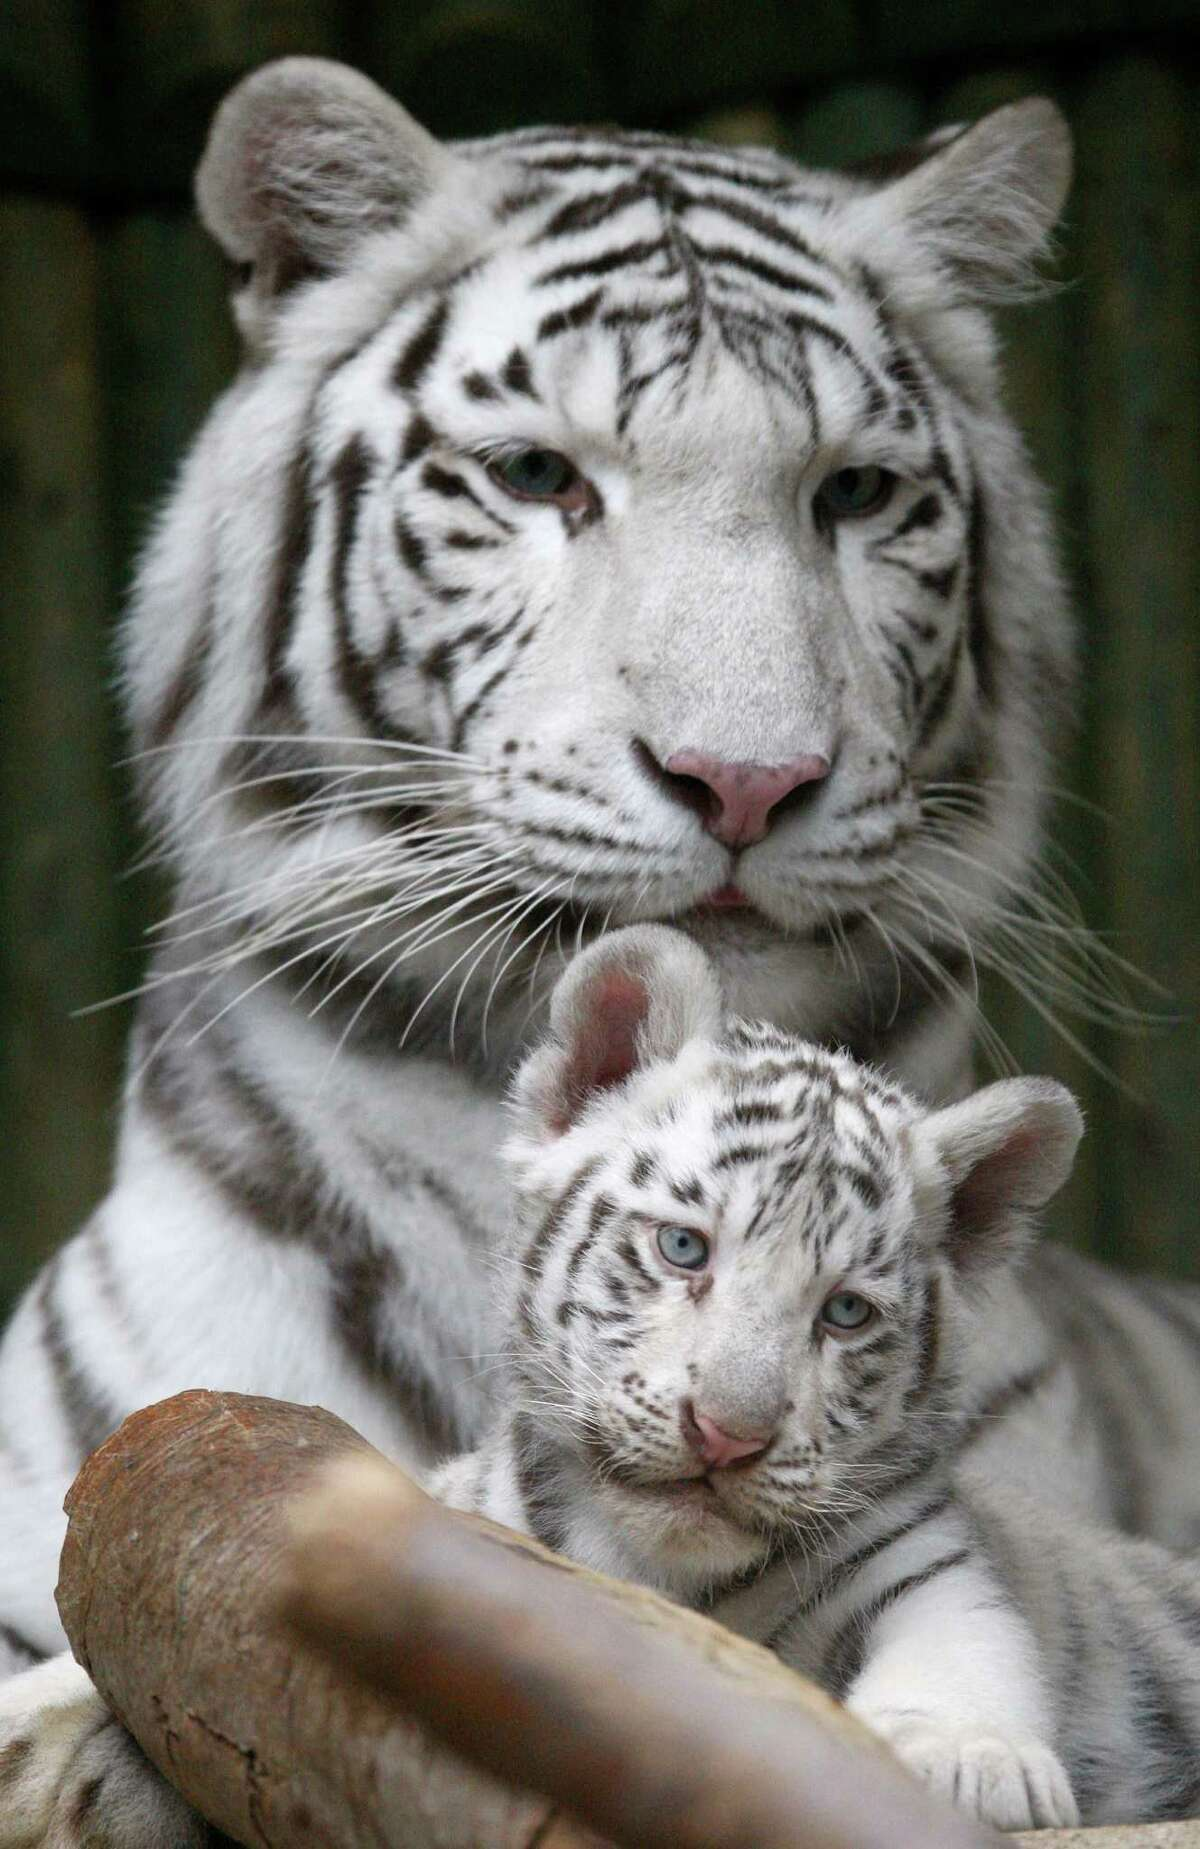 A rare white Indian tiger cub sits with its mother Surya Bara at a zoo in the city of Liberec, Czech Republic, Monday, Sept. 3, 2012. It's one of triplets that were born in July.